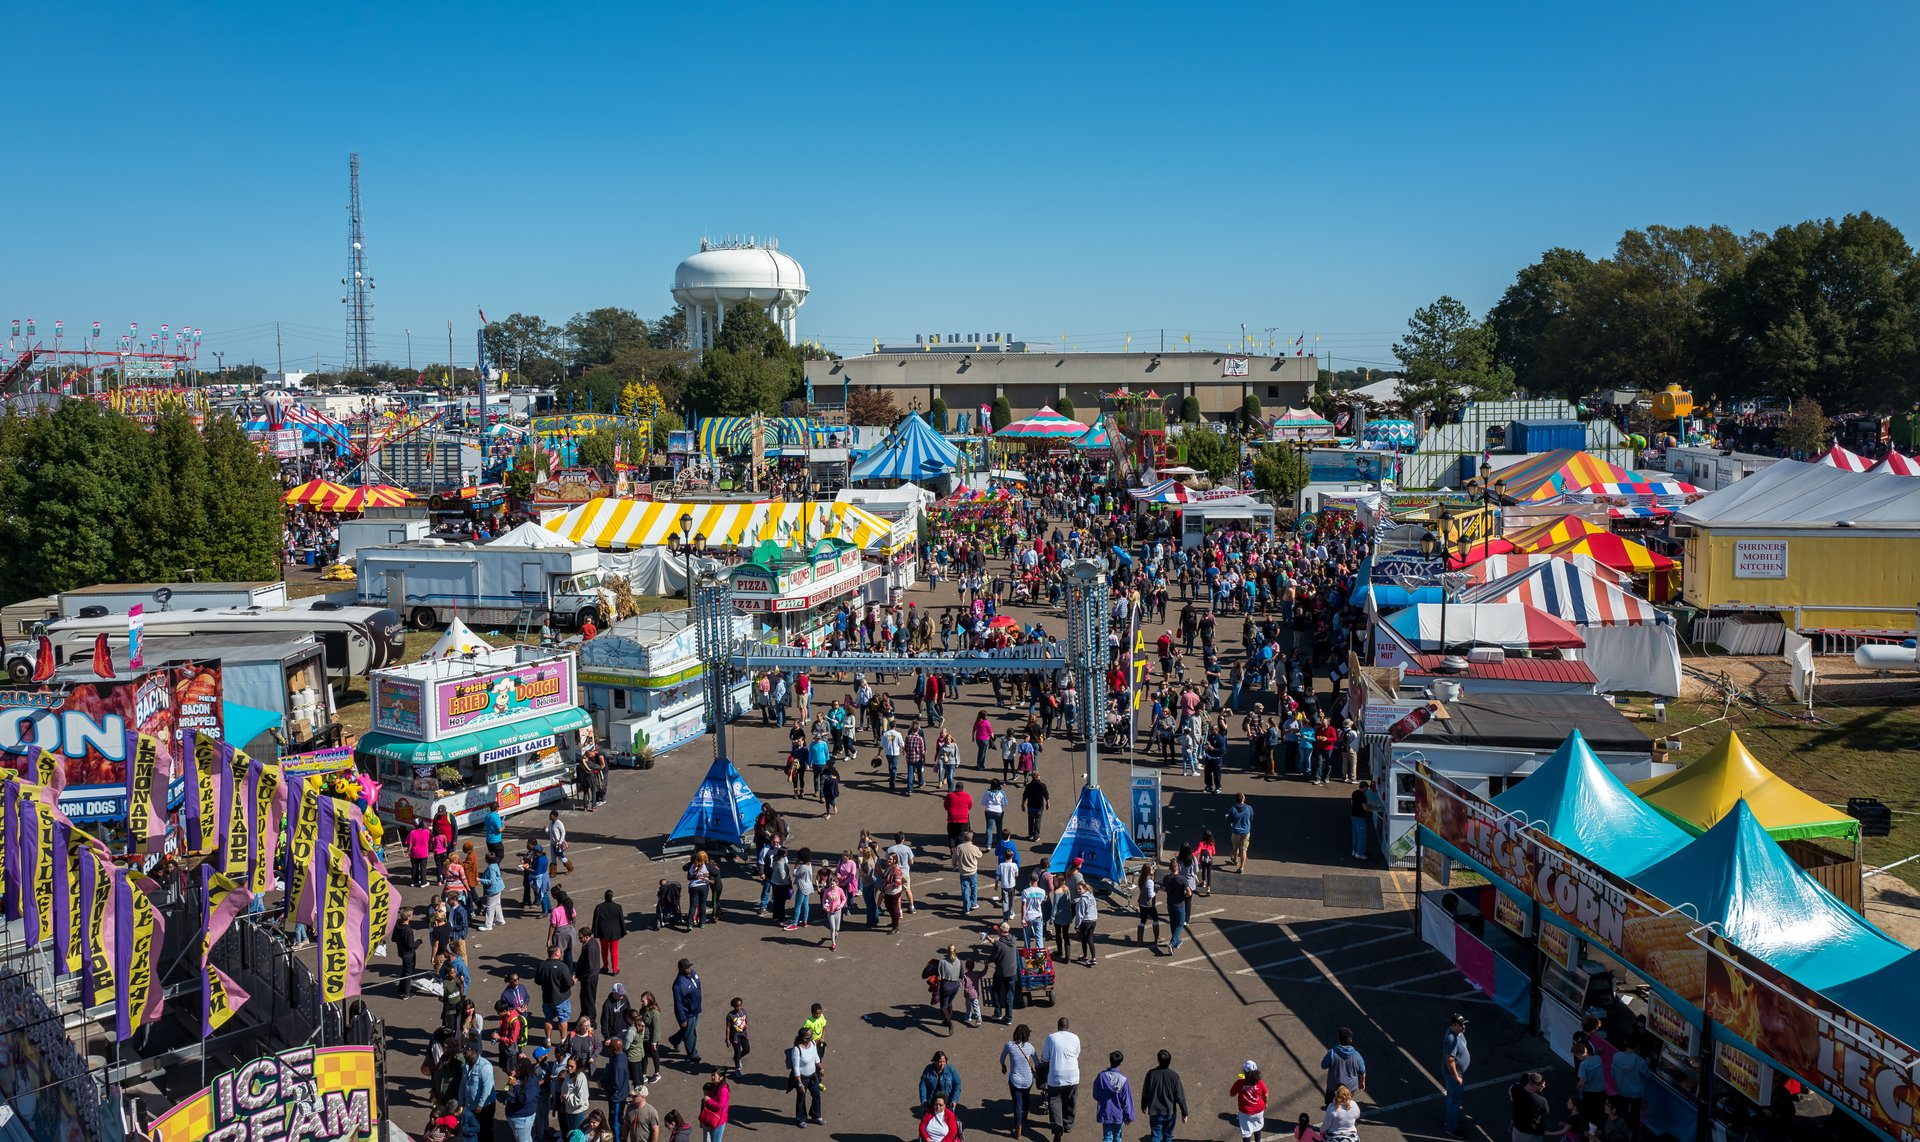 North Carolina State Fair in North Carolina - Best Season 2020